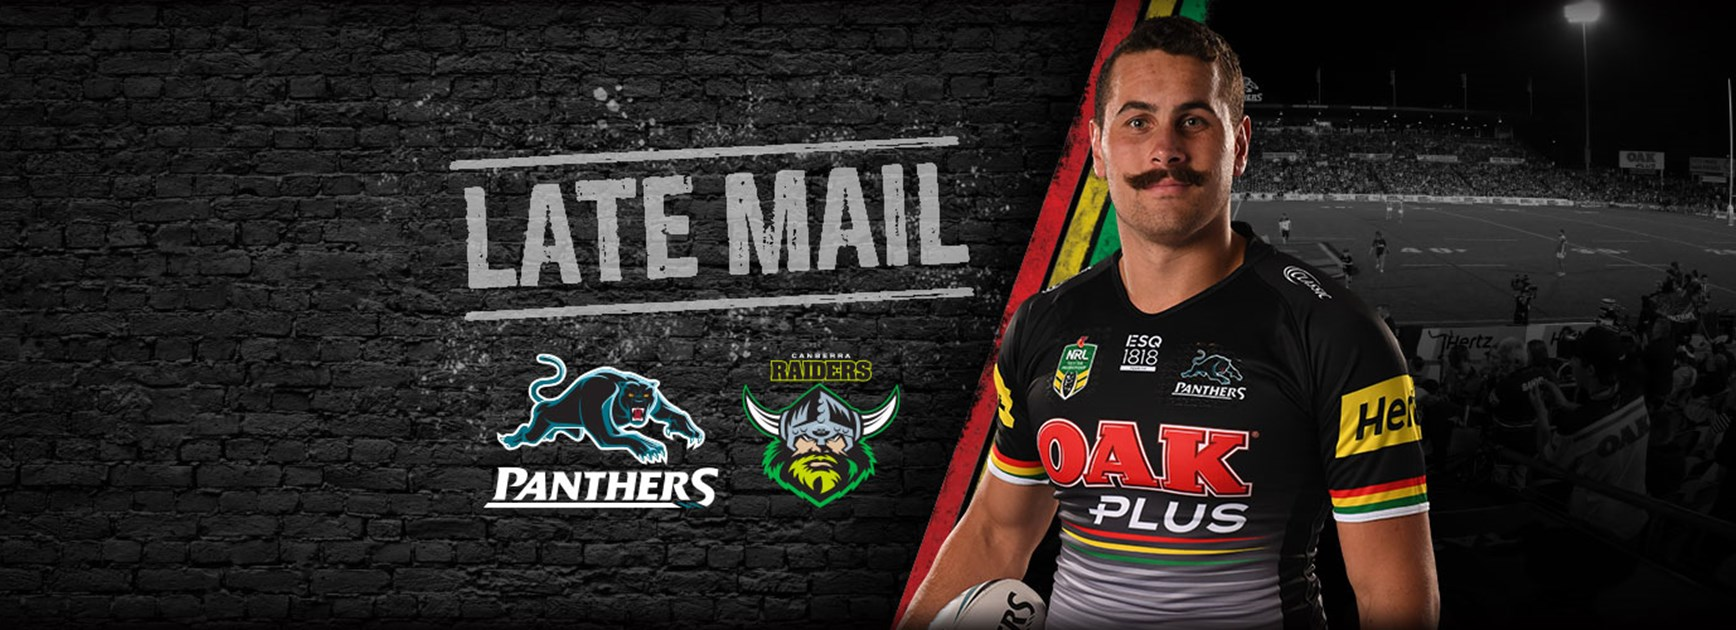 NRL Late Mail: Round 21